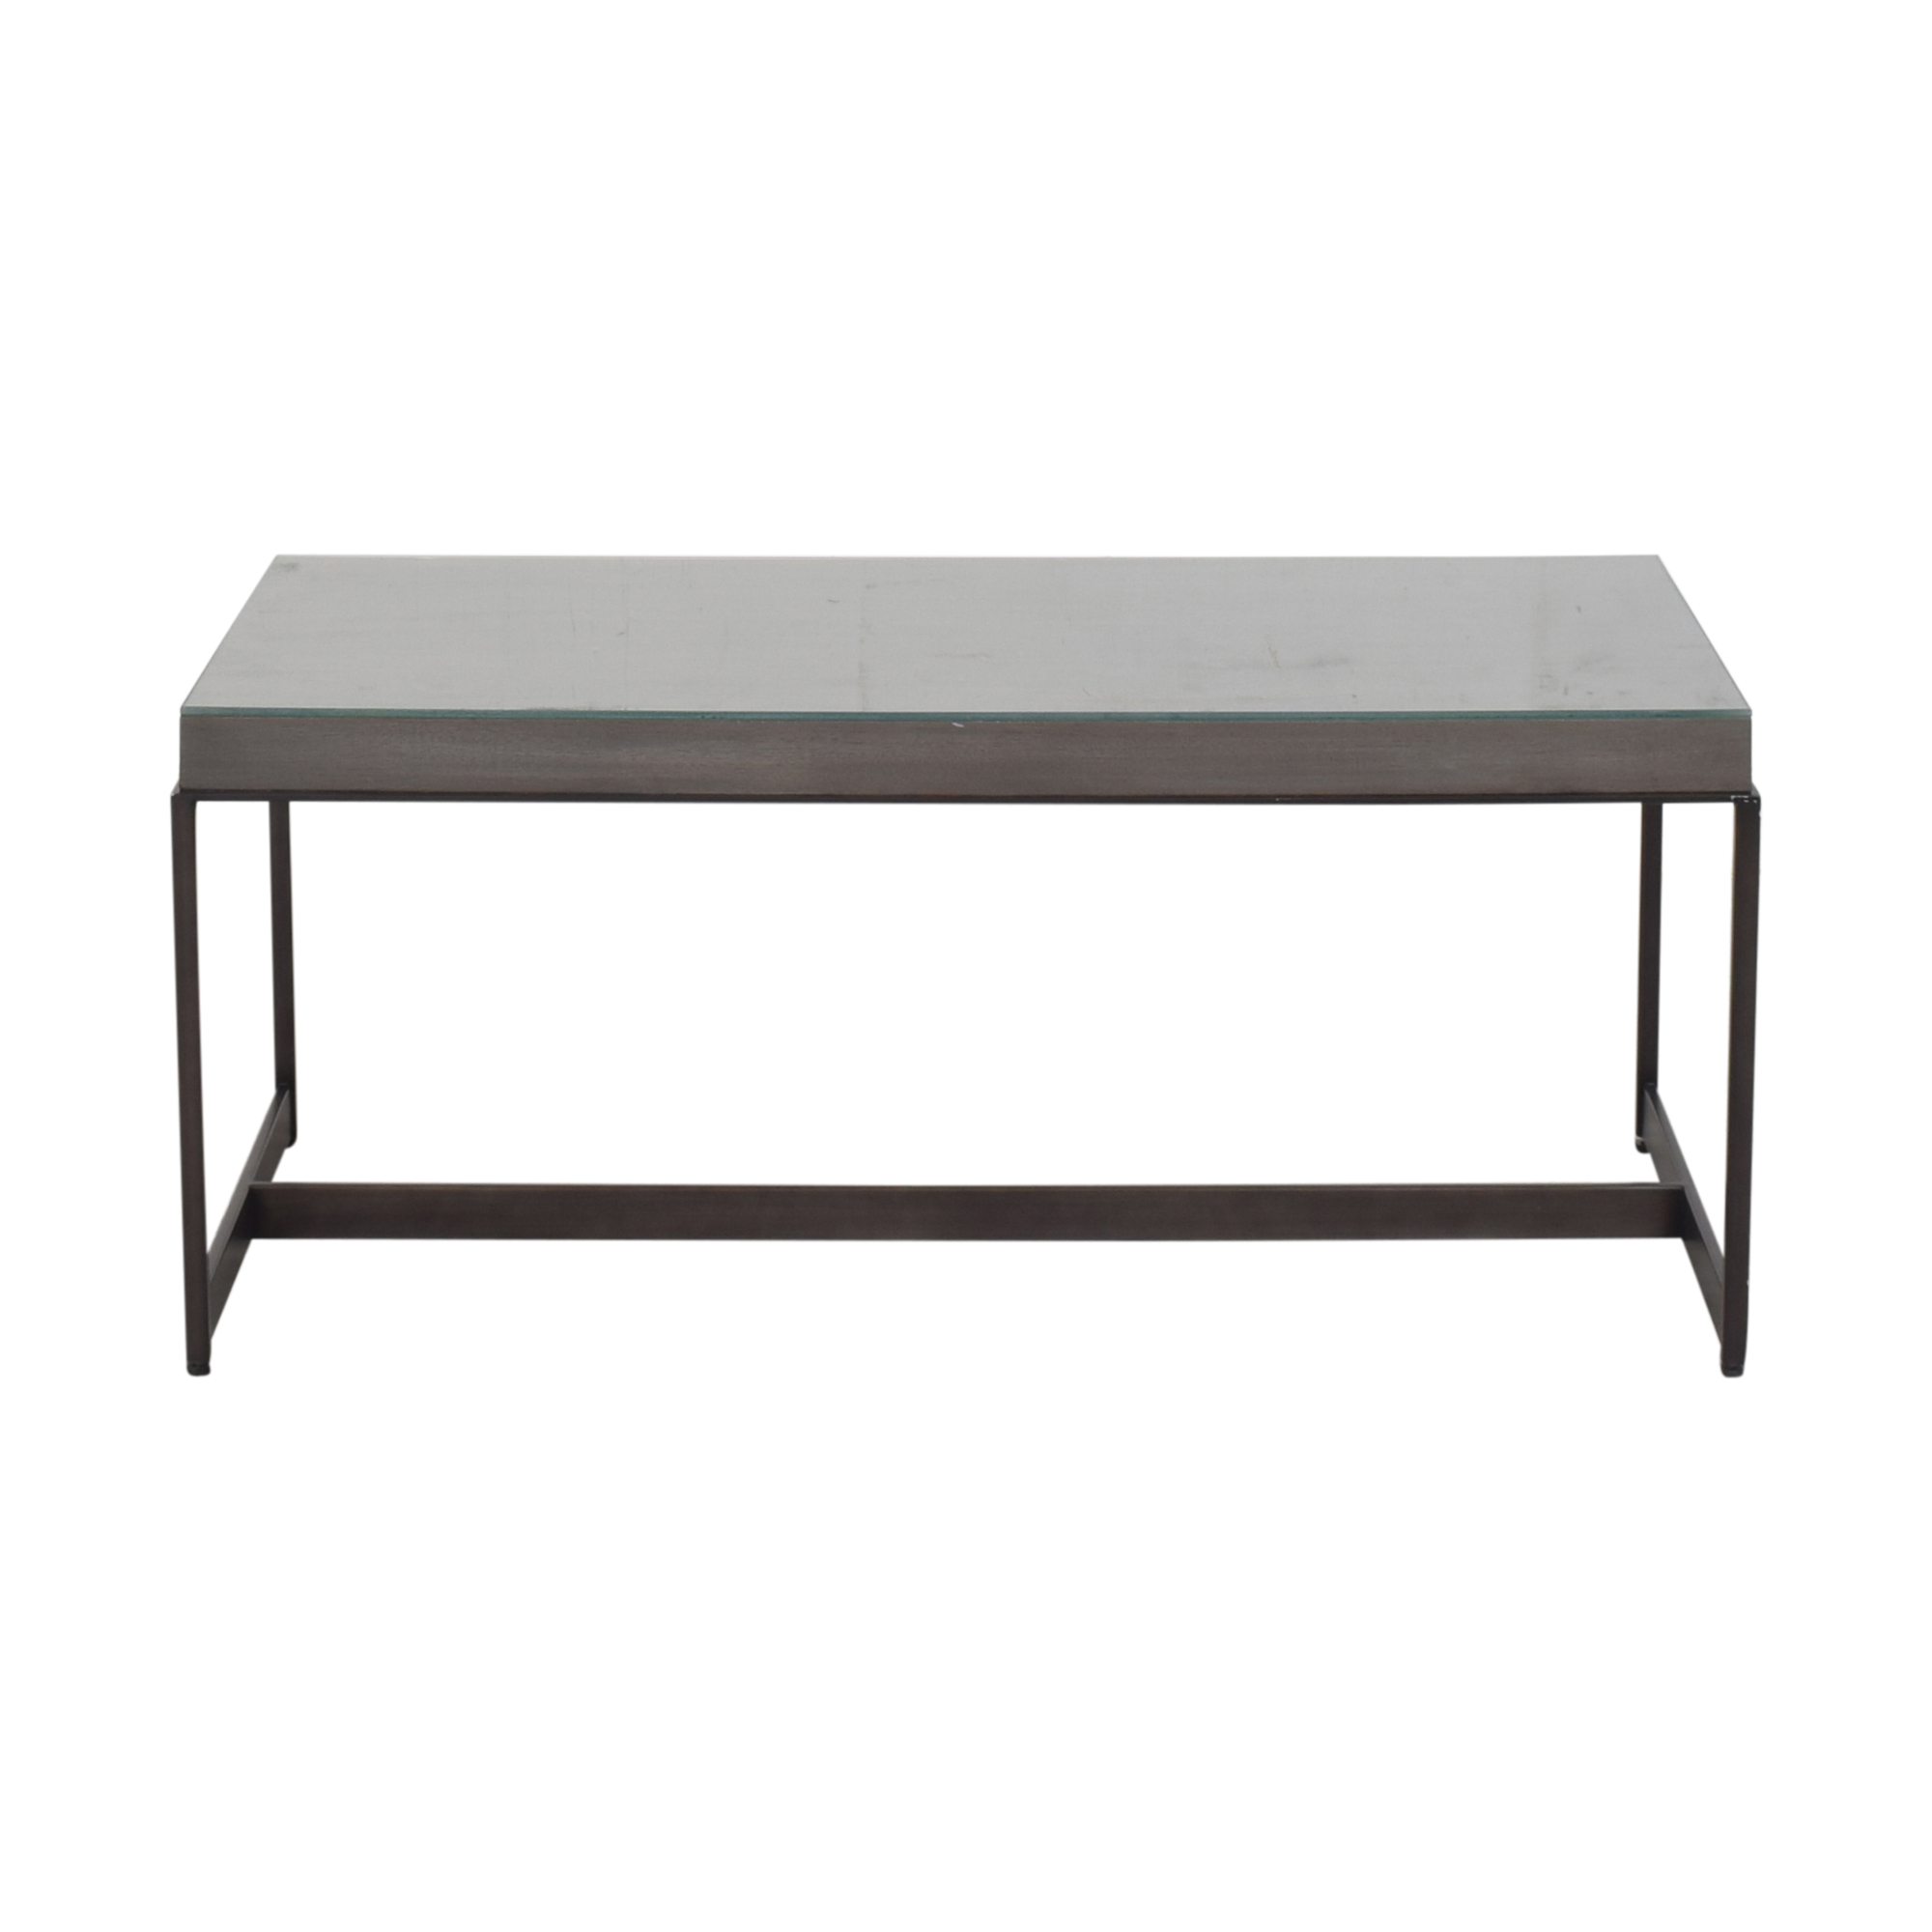 Ethan Allen Ethan Allen Edmonds Rectangular Coffee Table price